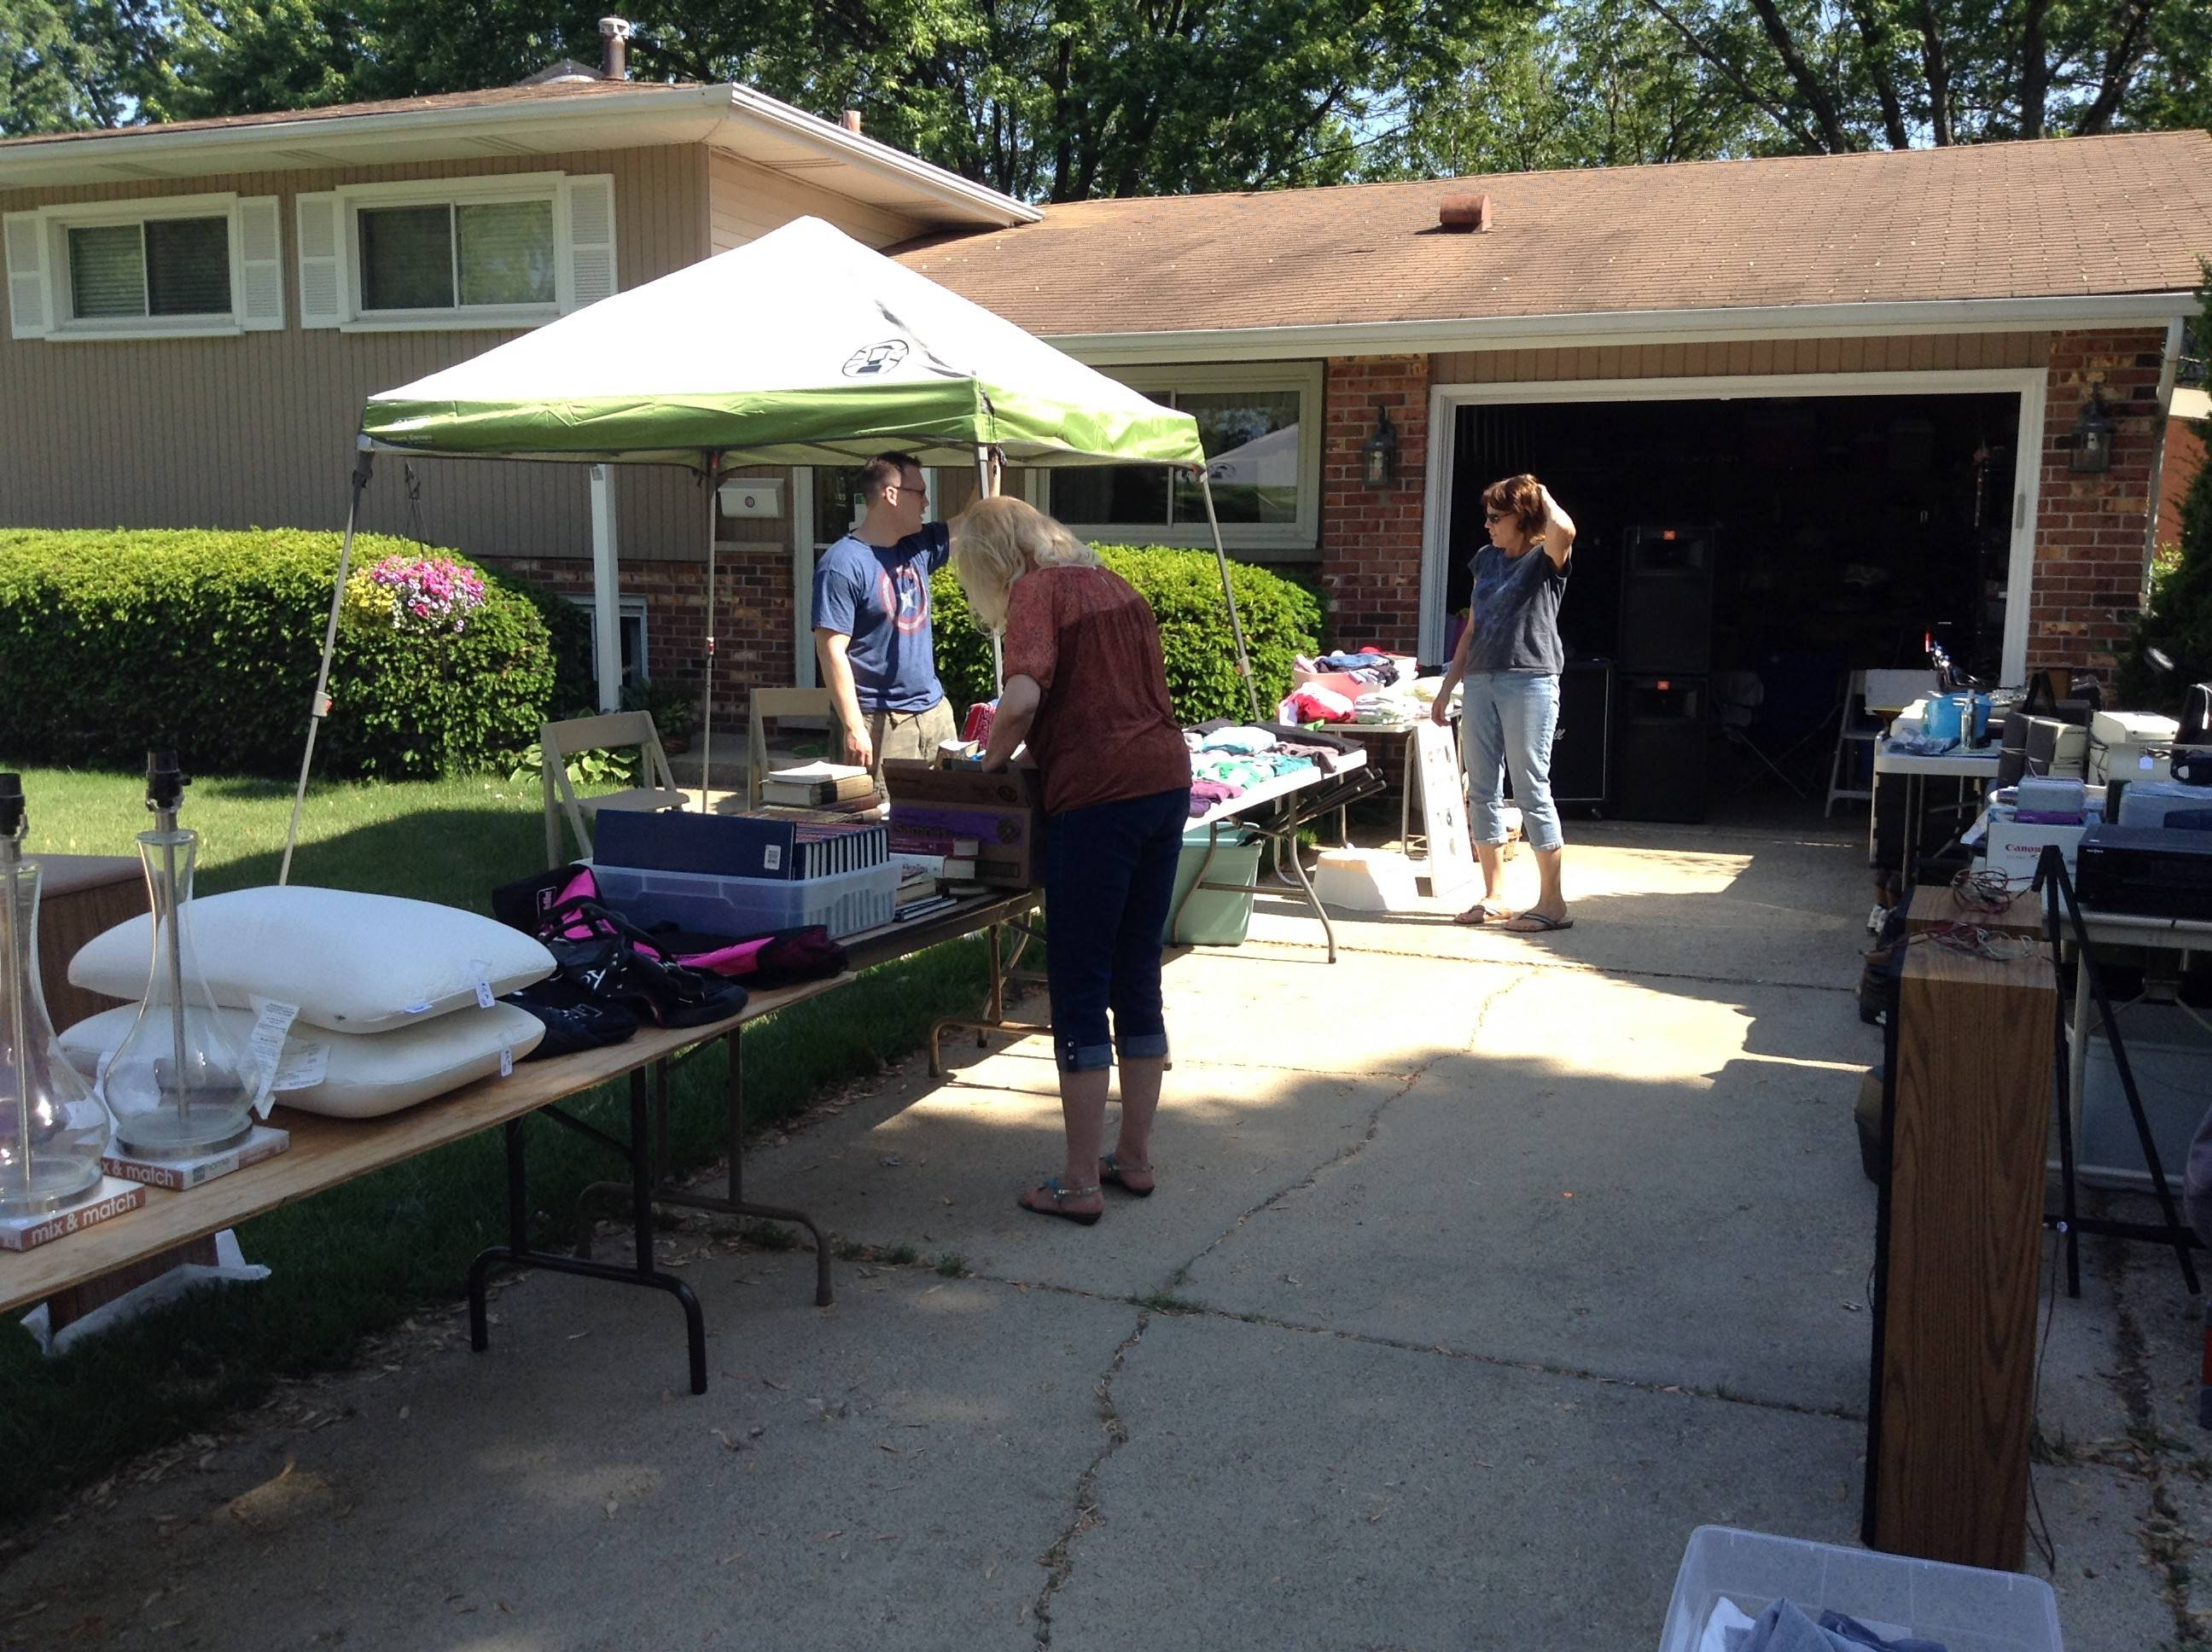 A Timbercrest subdivision family inventories their items for sale Friday afternoon following the morning rush on the first day of the three-day Timbercrest-Woods Garage Sale in Schaumburg.